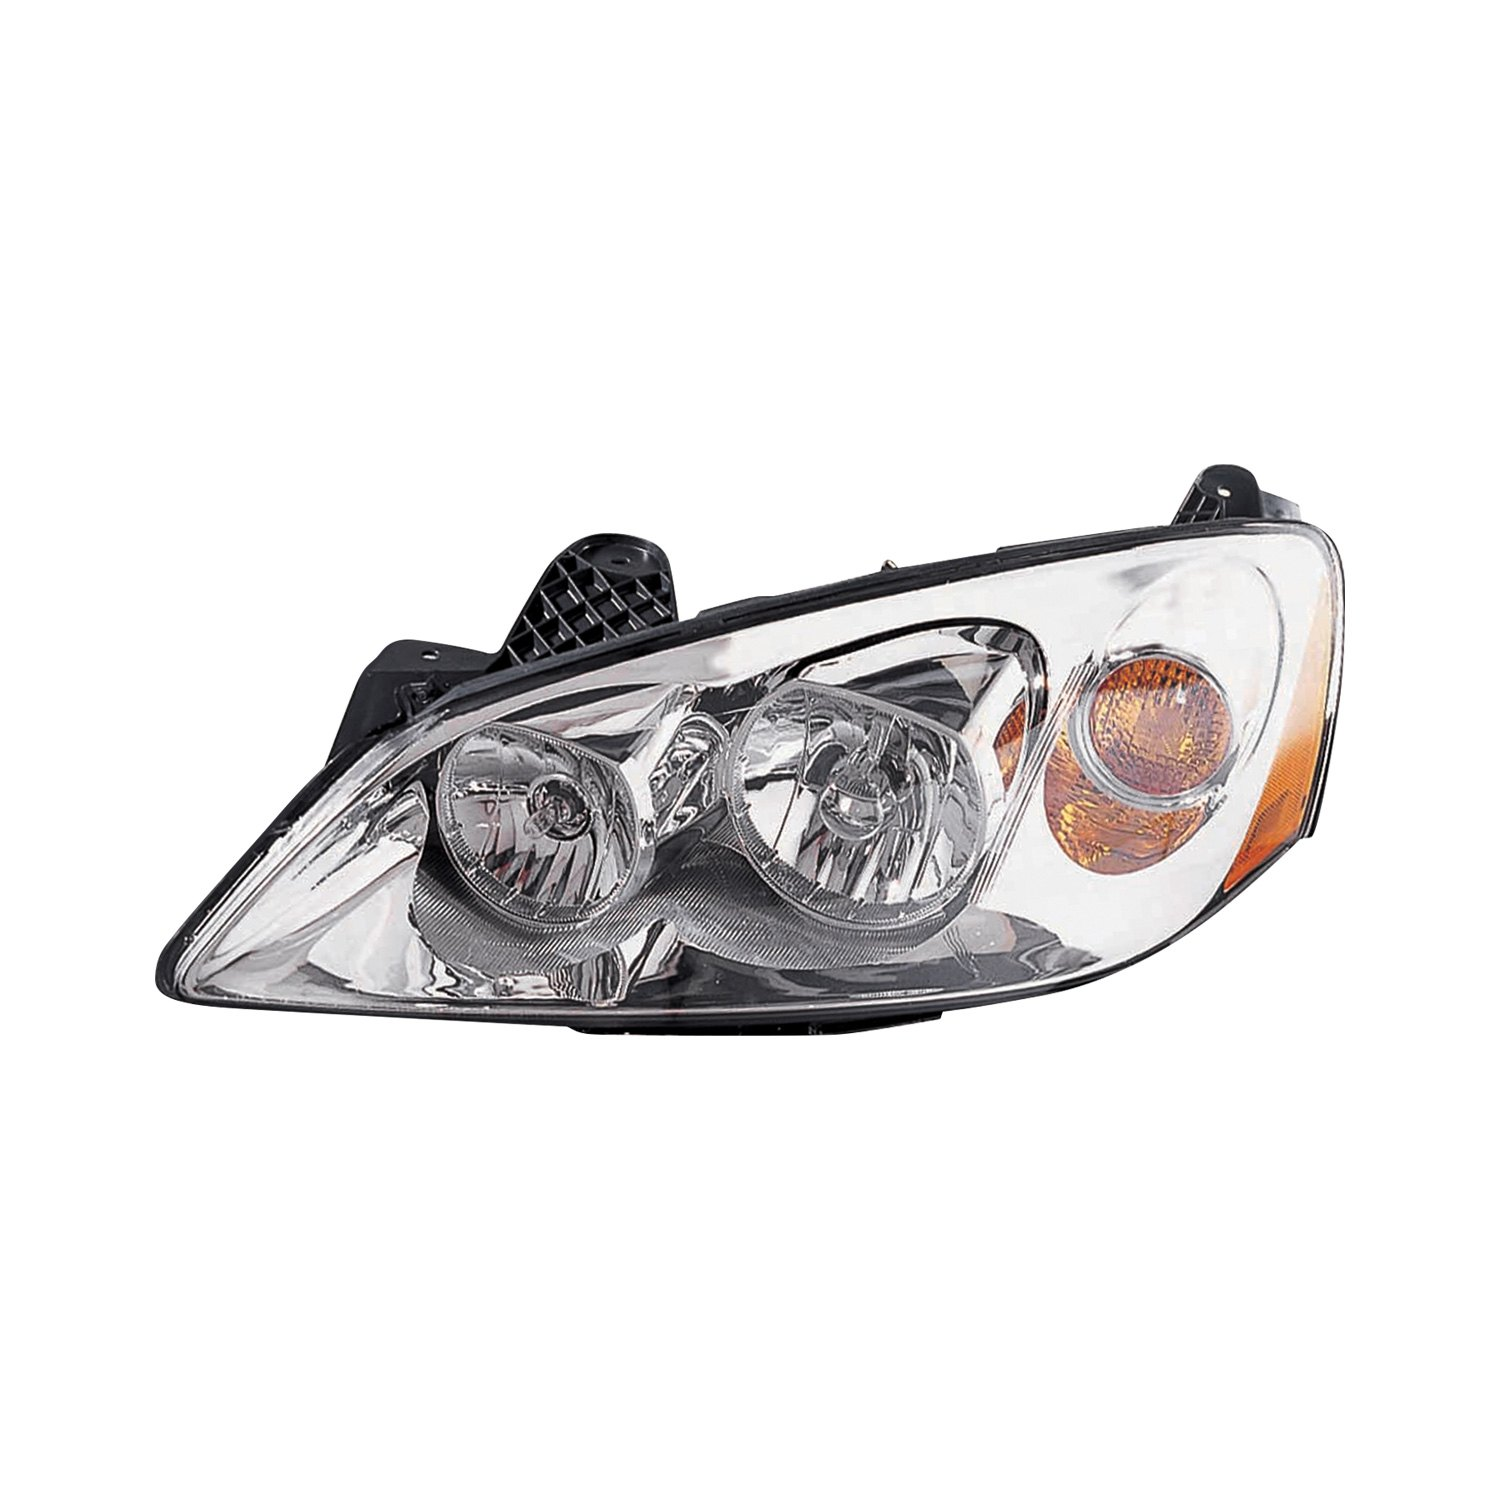 Replace 174 Pontiac G6 2008 2009 Replacement Headlight